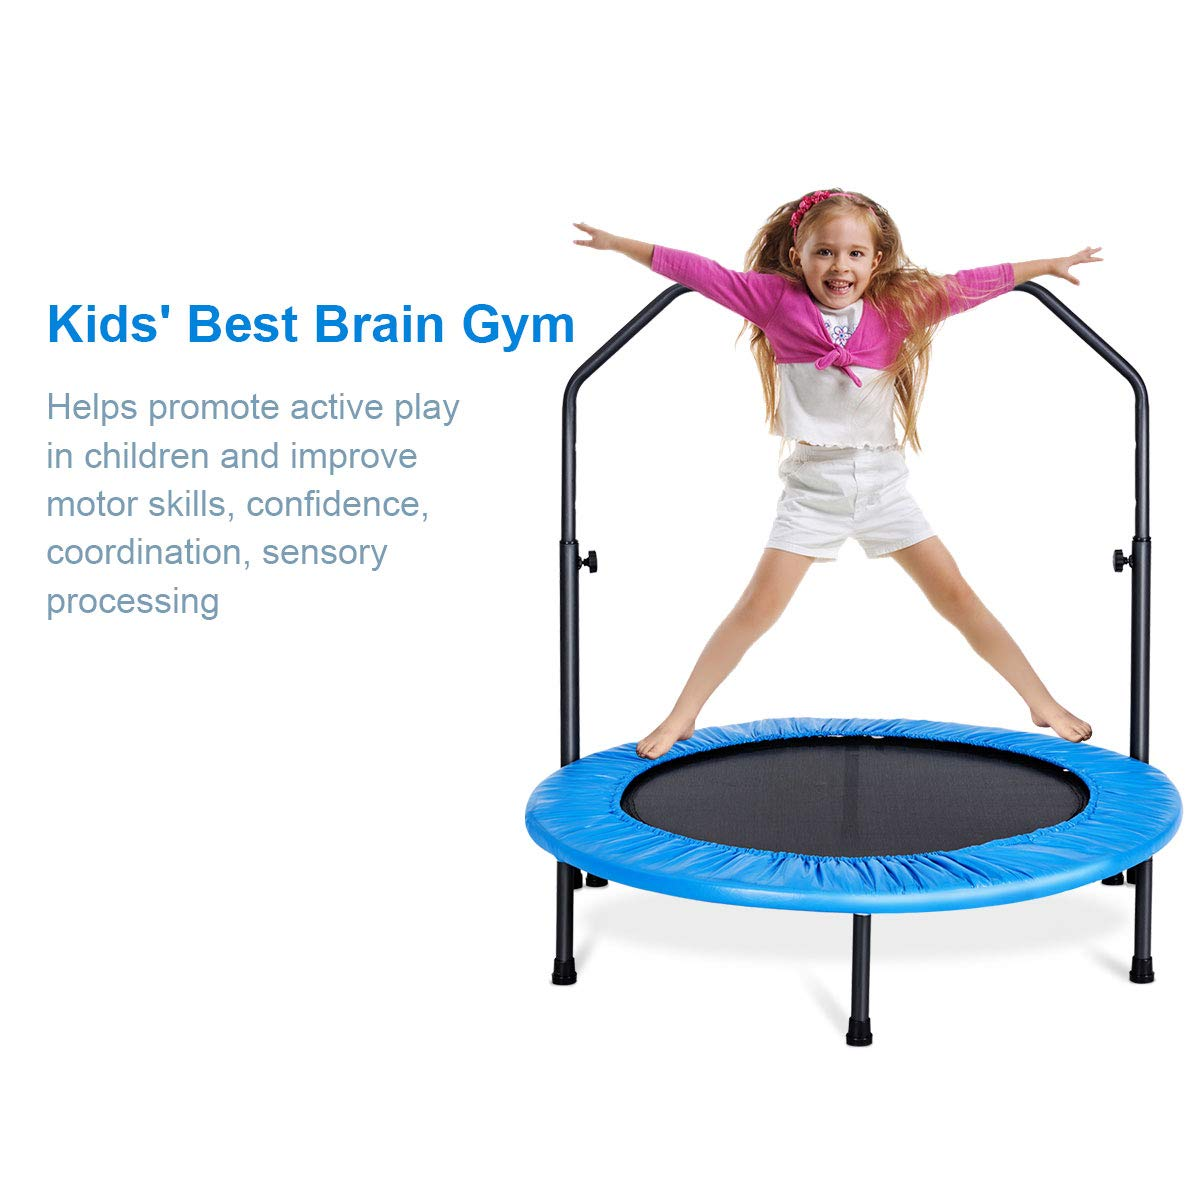 Jump Fitness Workout Trainer Grepatio 48 Fitness Mini Trampoline Max Load 330lbs Indoor Rebounder for Adults Exercise Trampoline with Adjustable Foam Handle